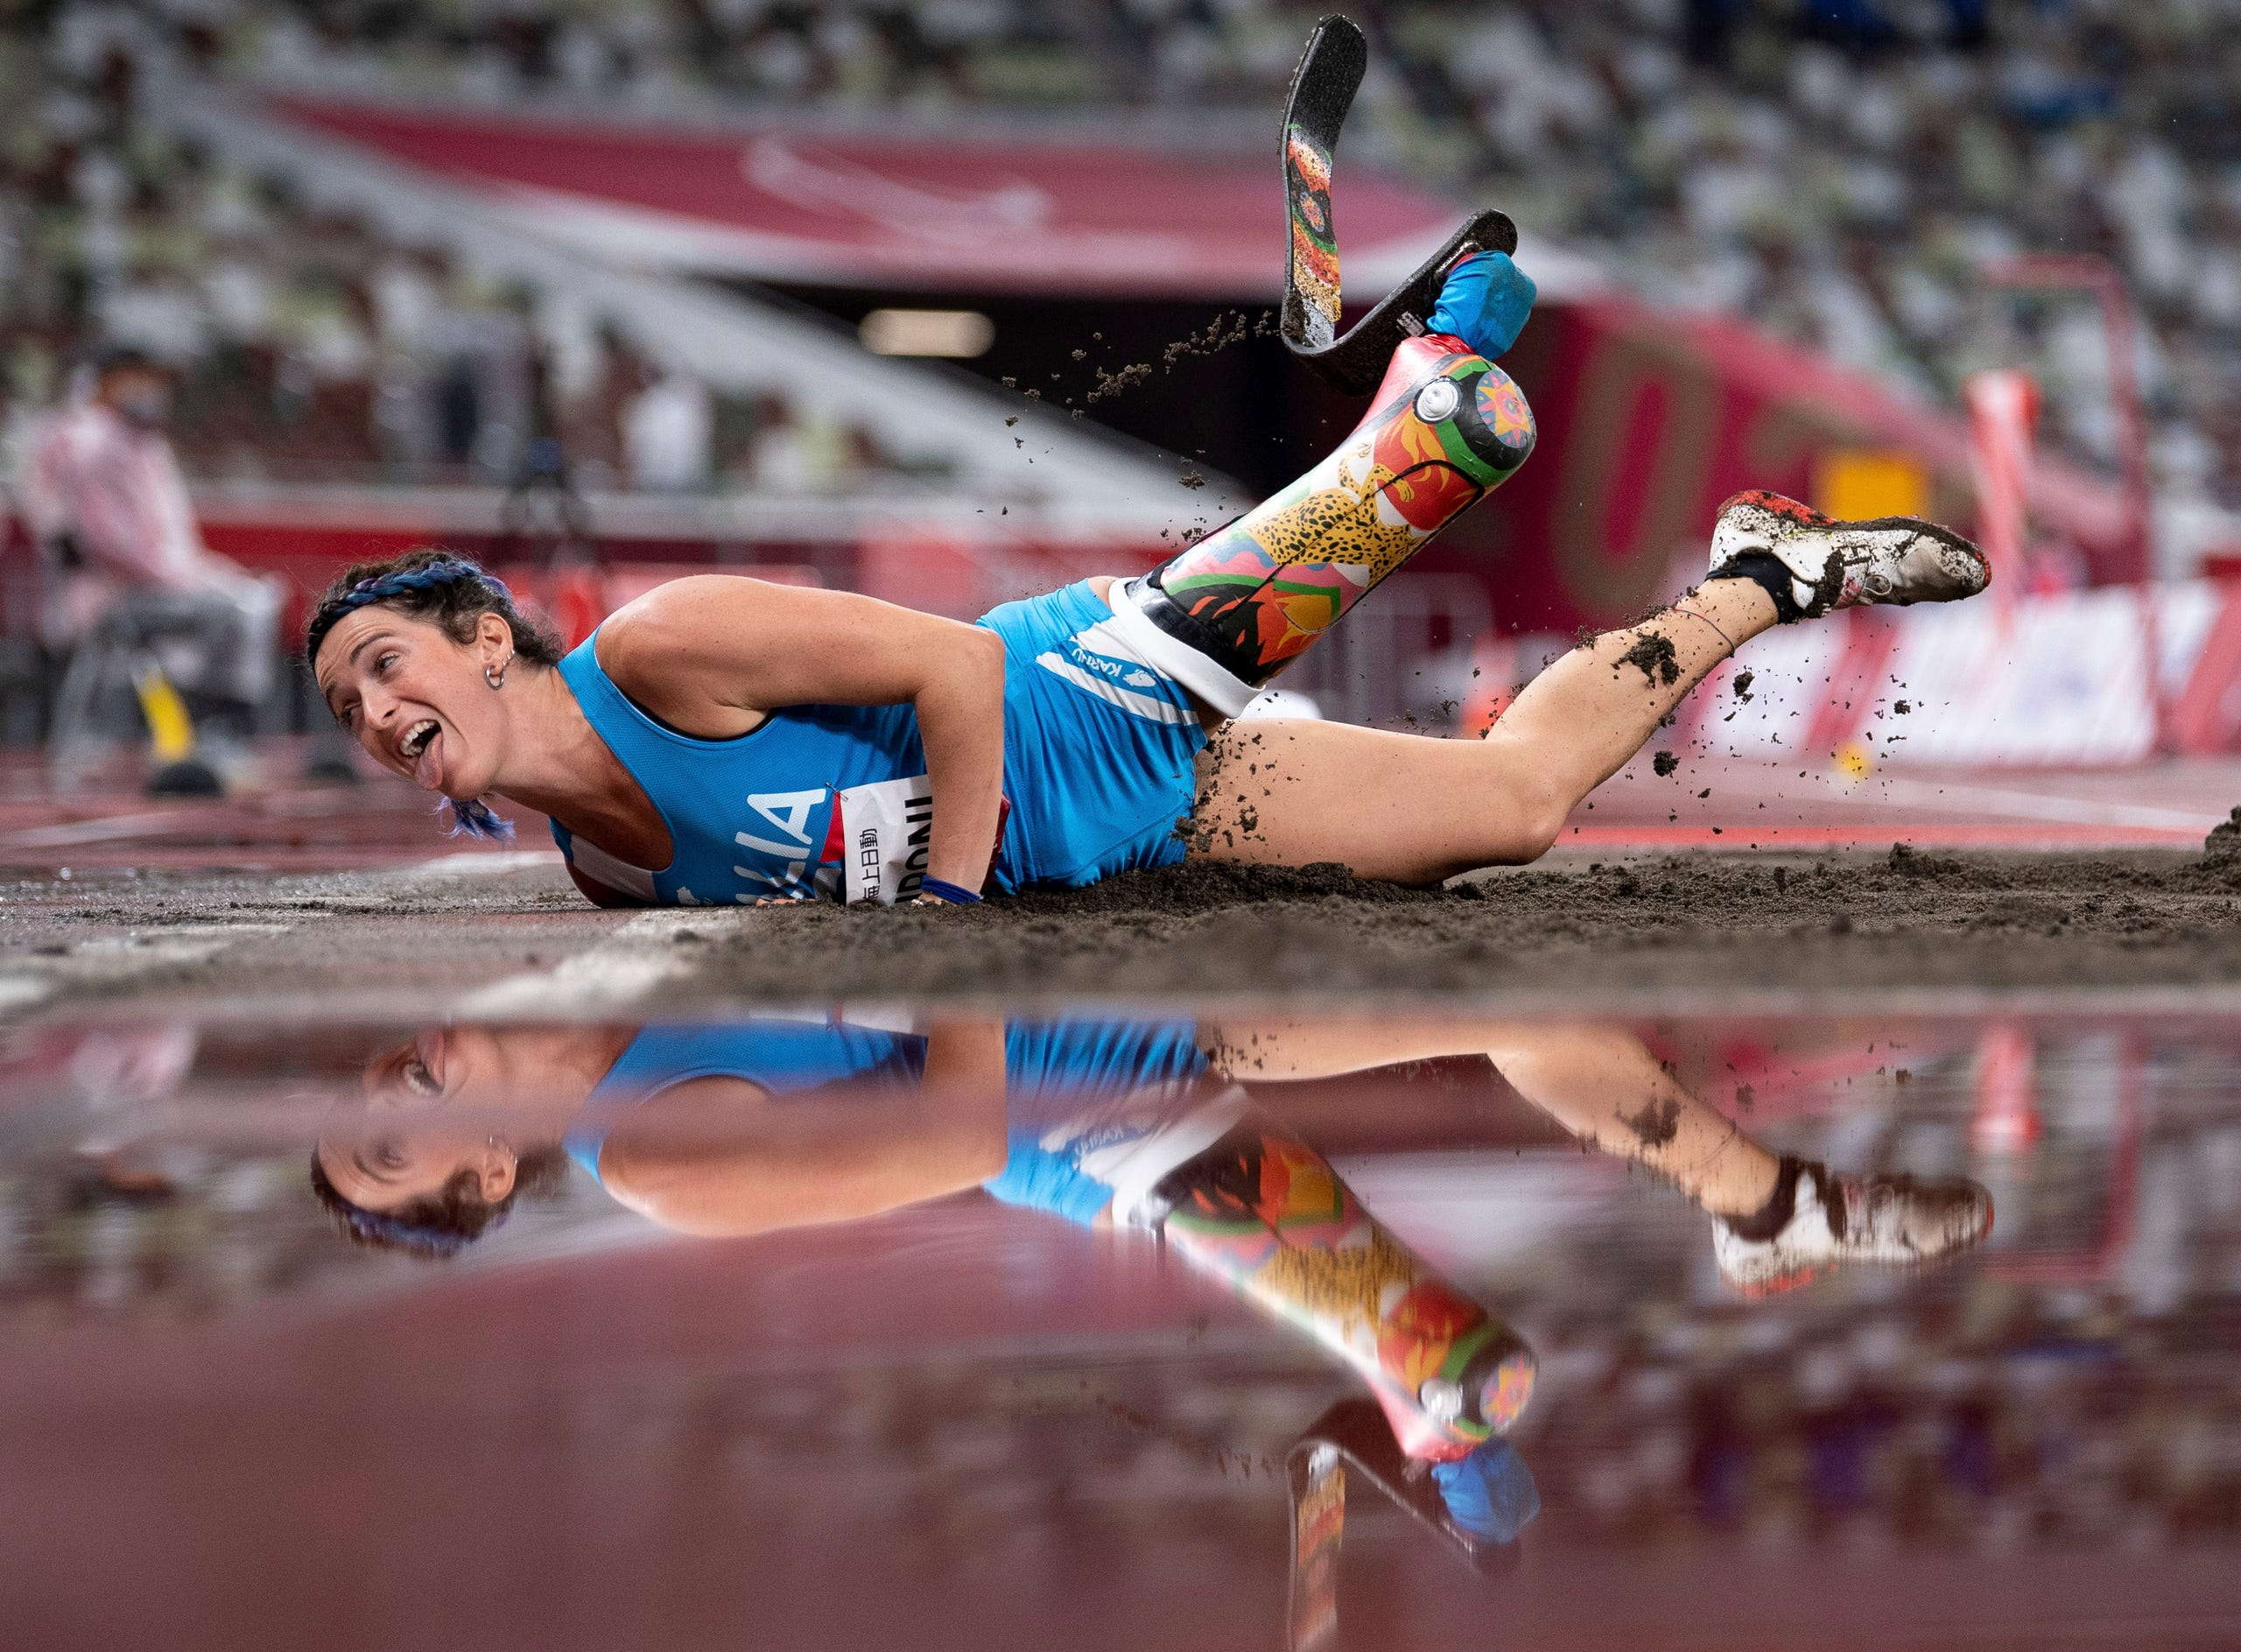 Sept. 2: Martina Caironi ITA competes in the Women's Long Jump - T42 Athletics Final at the Olympic Stadium during the Tokyo 2020 Paralympic Games.